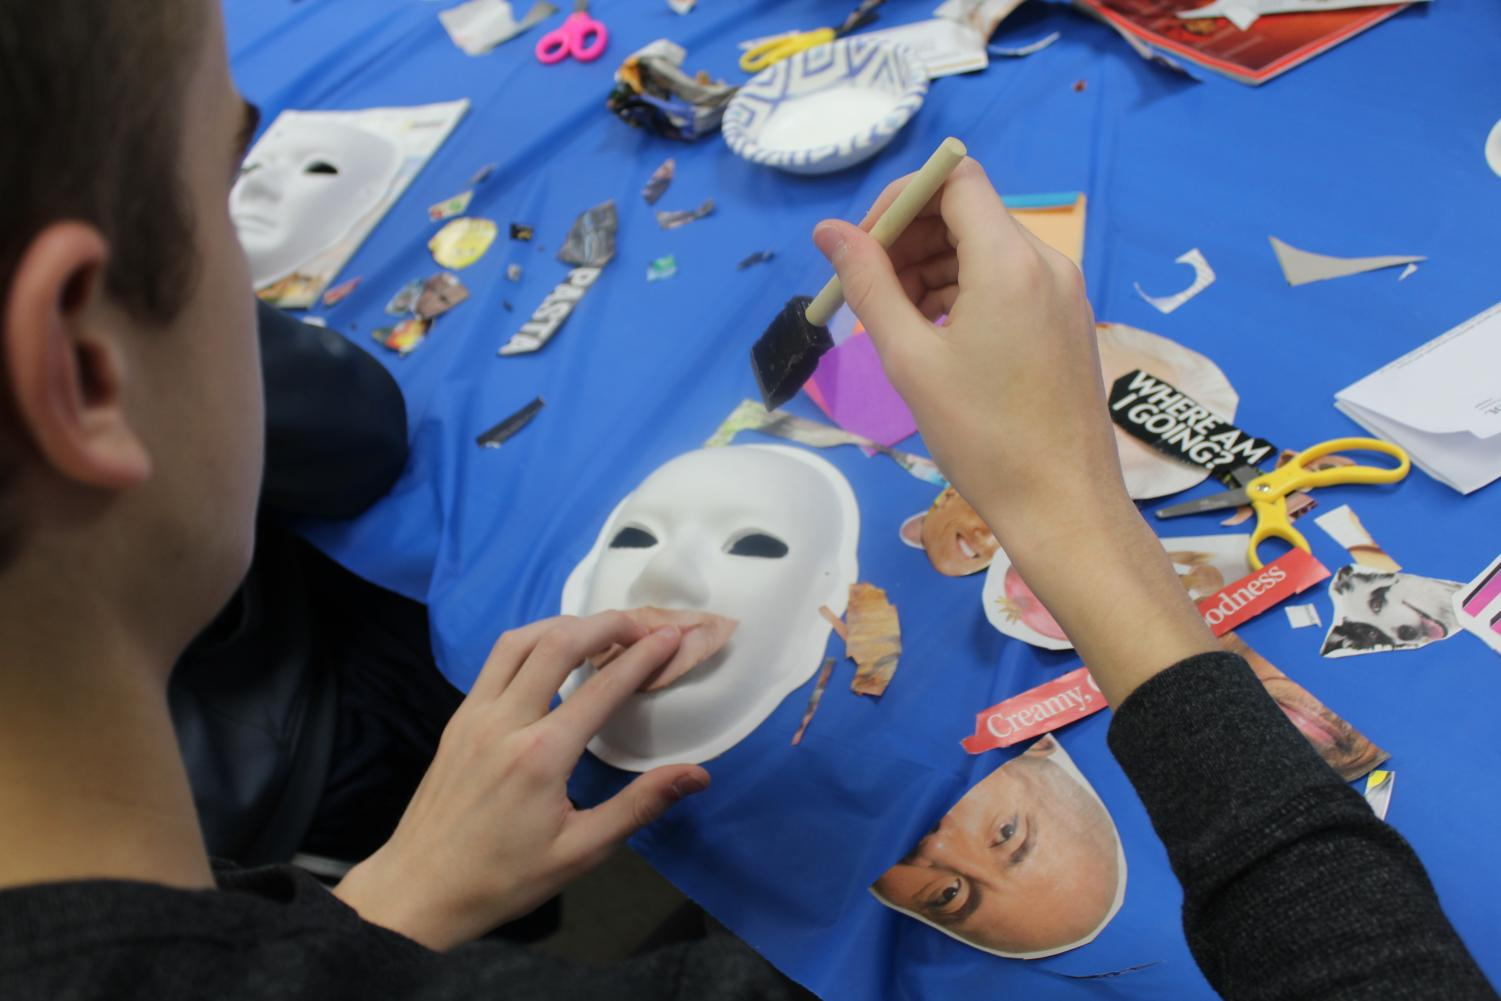 A student participates in creating a mask to represent themselves through images and words.